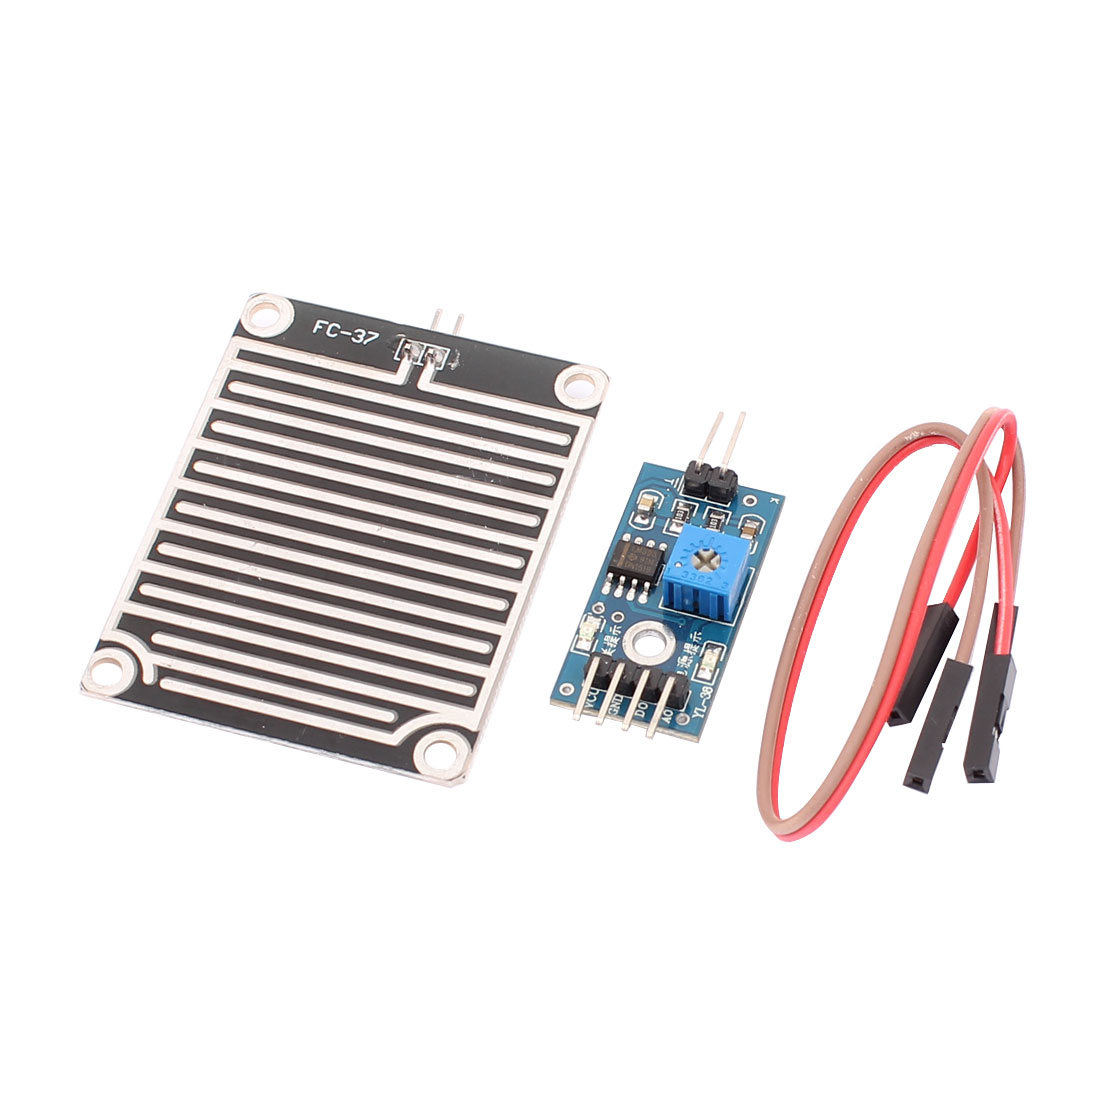 Raindrops Detection Sensor for Arduino Weather Module Humidity Detect Kit